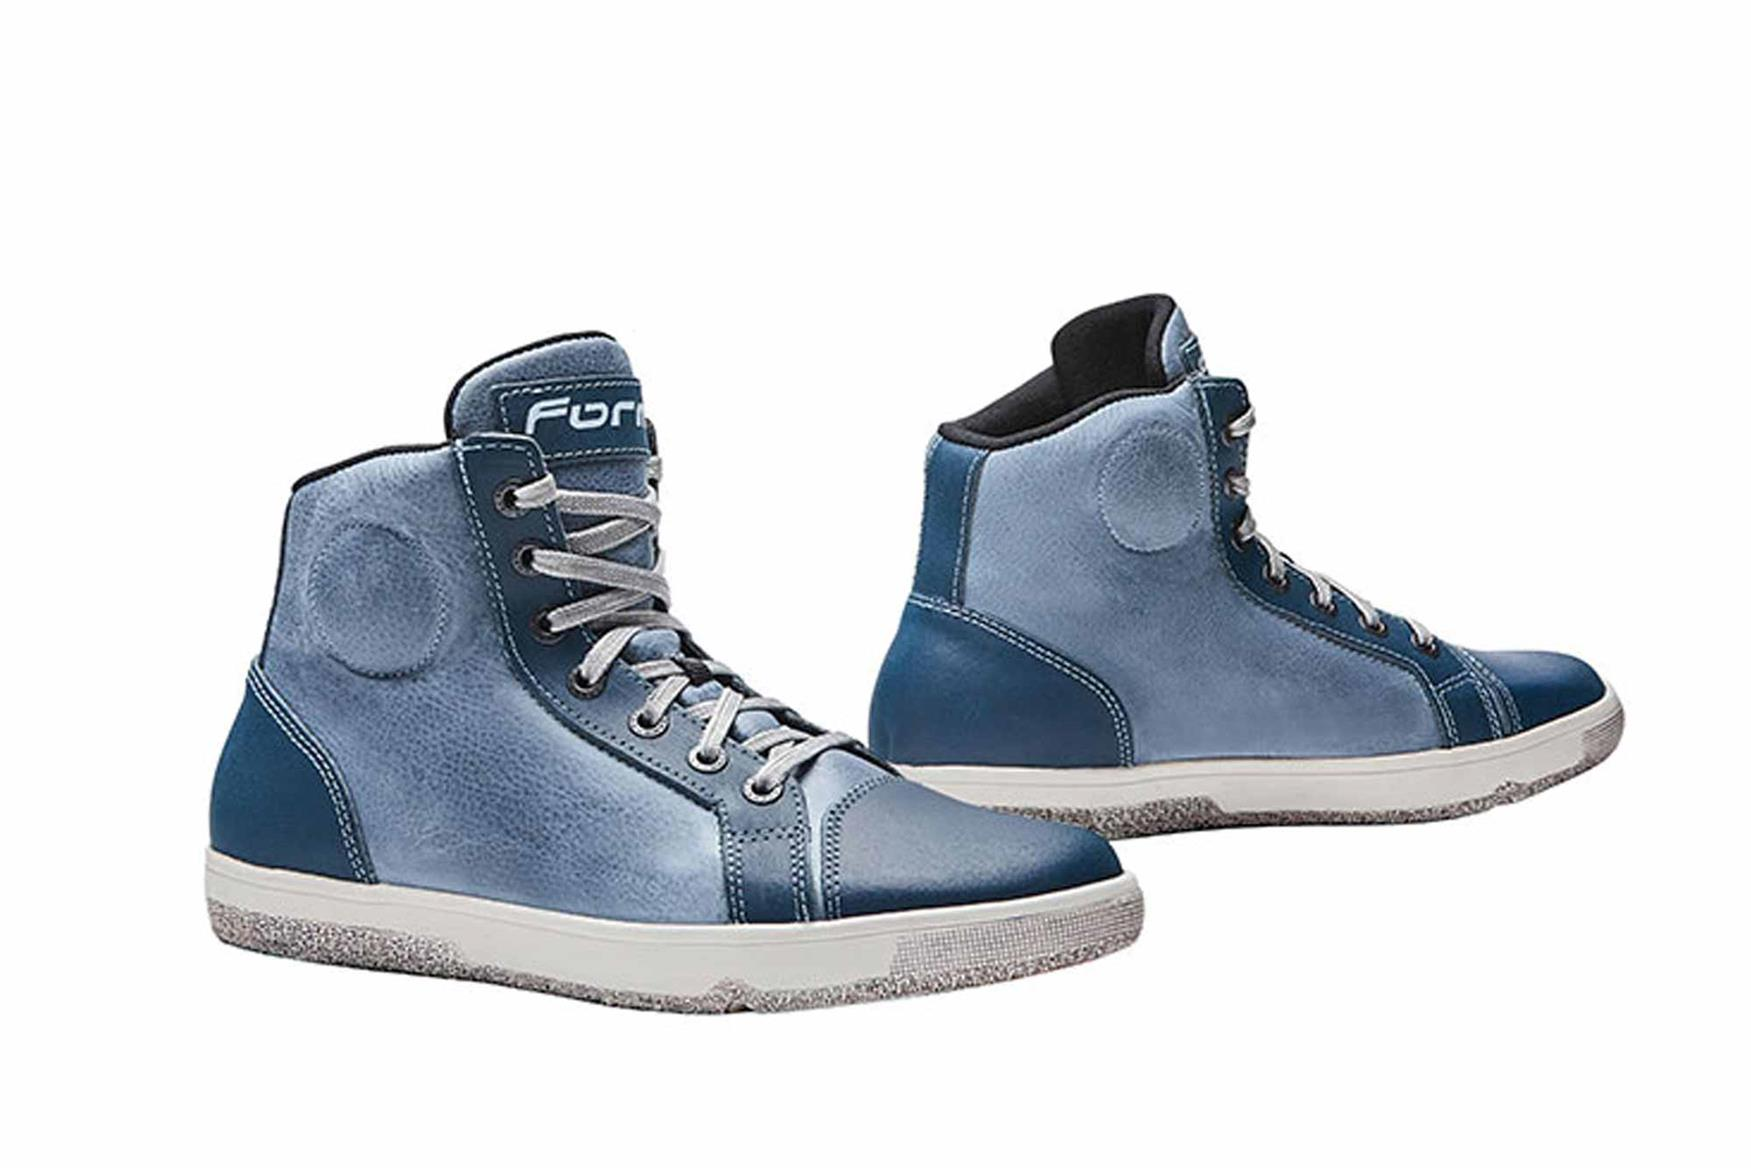 These Forma boots offer casual looks and protection